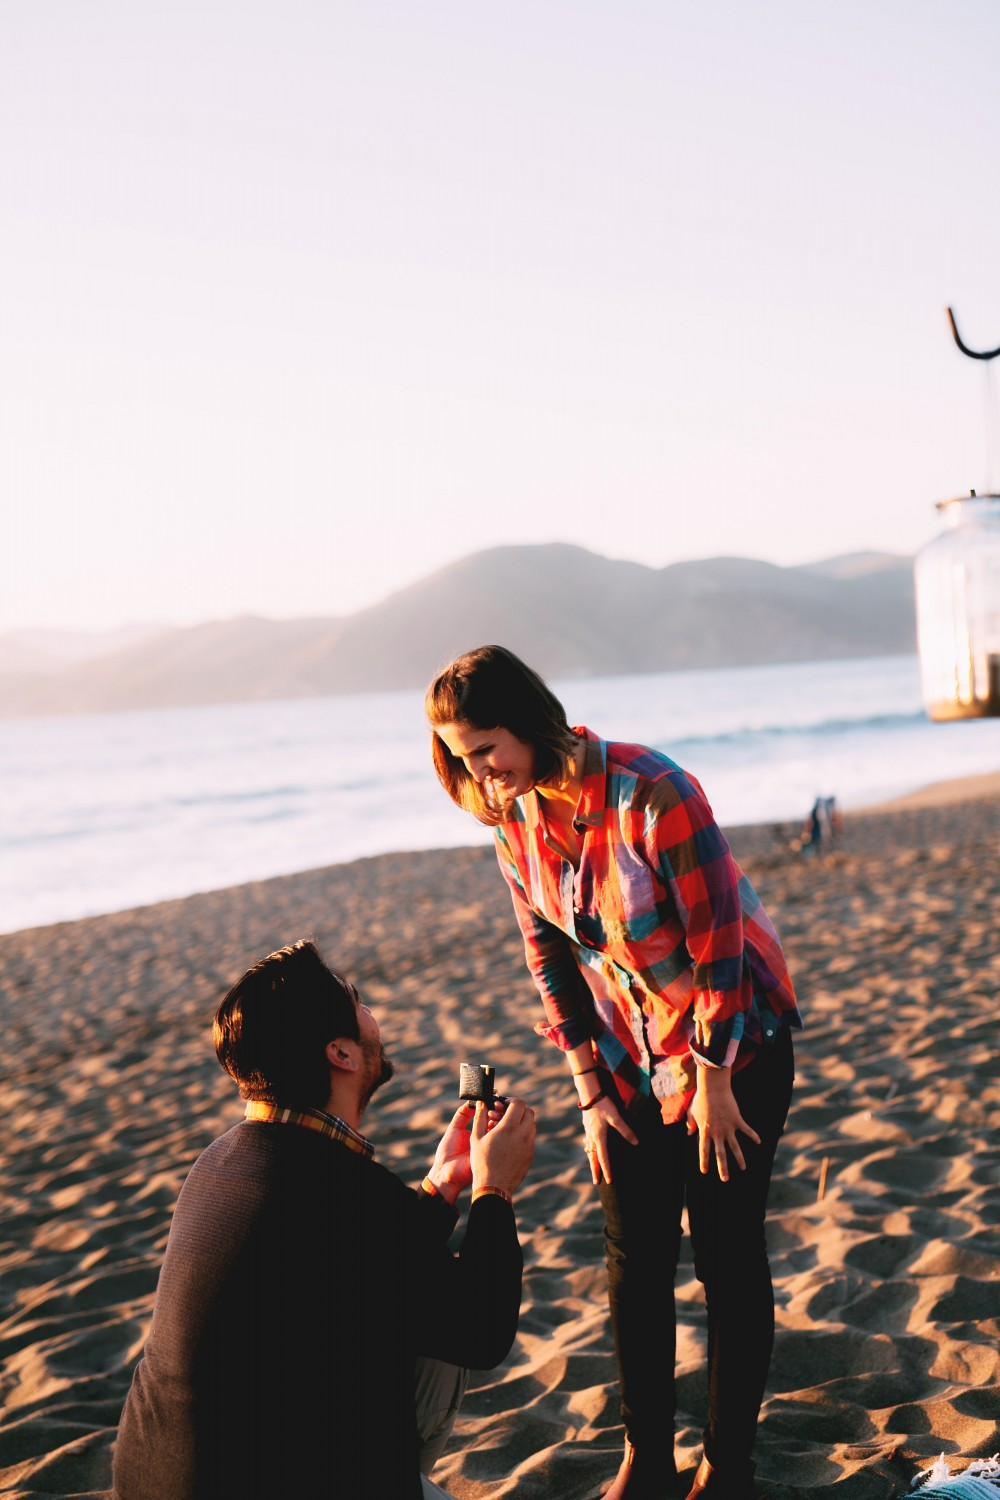 Image 5 of Kiersten and Zachary's Surprise Proposal on Baker Beach